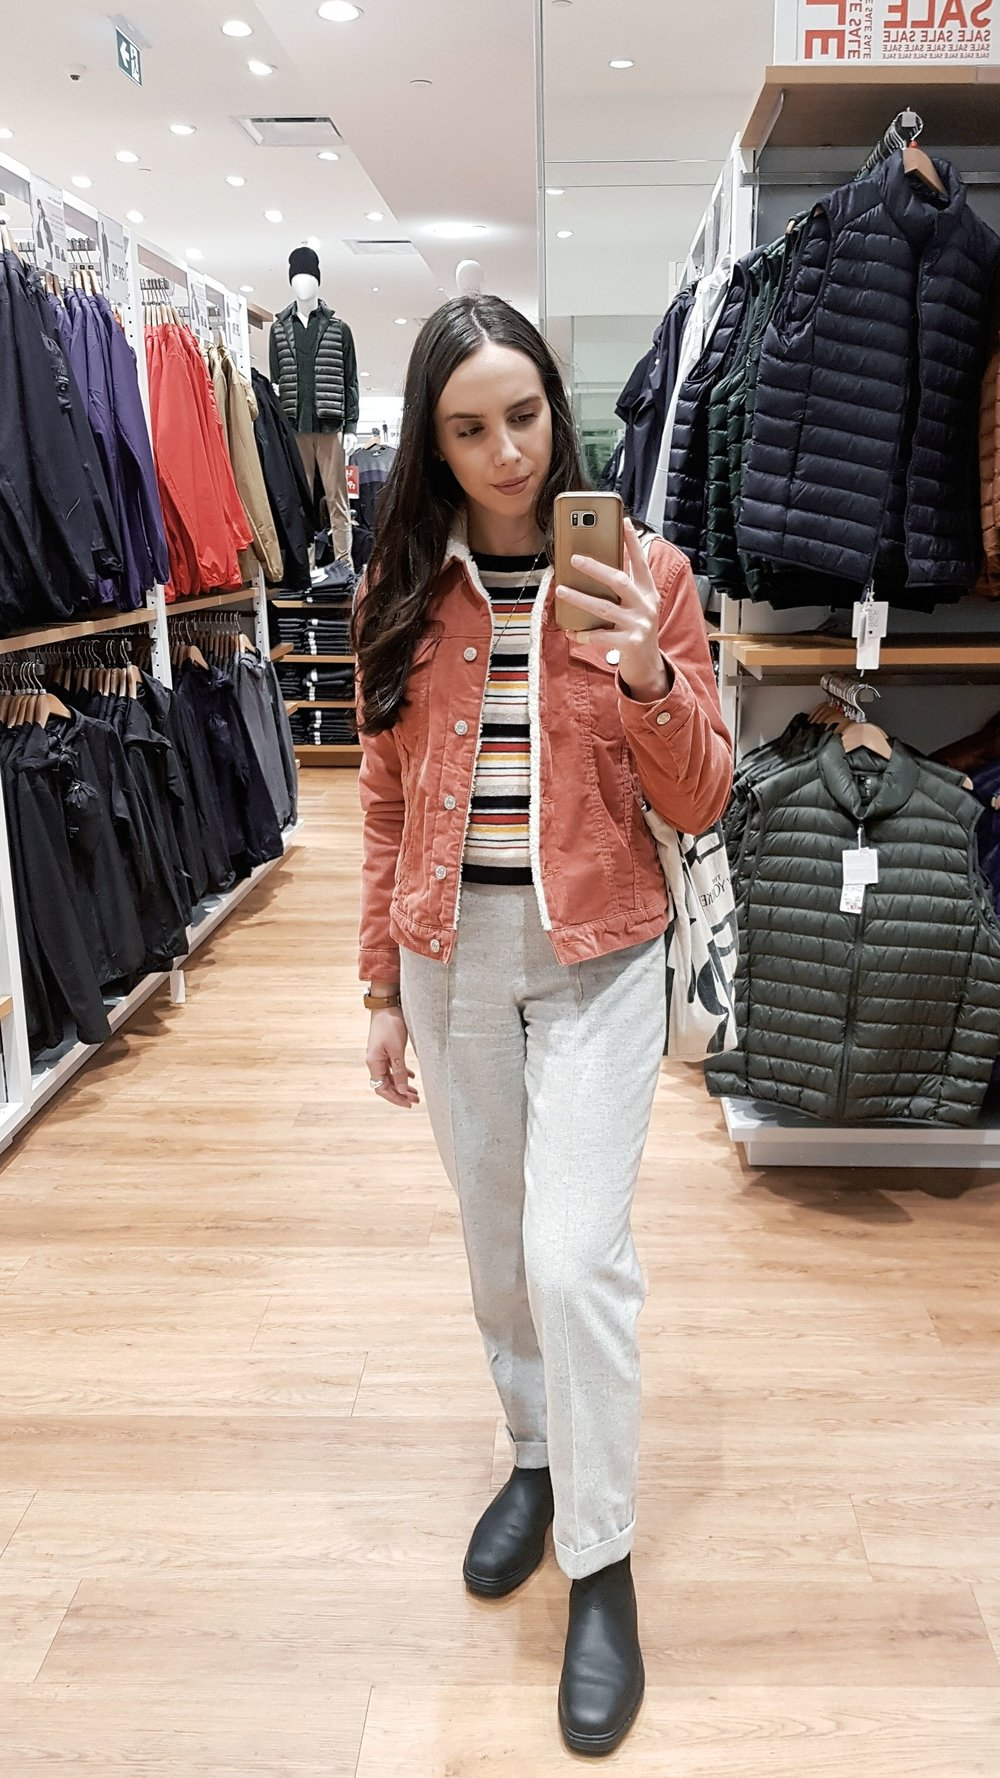 FRIDAY - Forever21 sweater, Gap corduroy jacket, wool trousers bought in Russia, Blundstone boots.Jacob had to work late and didn't take my picture so here I am, in Uniqlo mirror at the mall lol